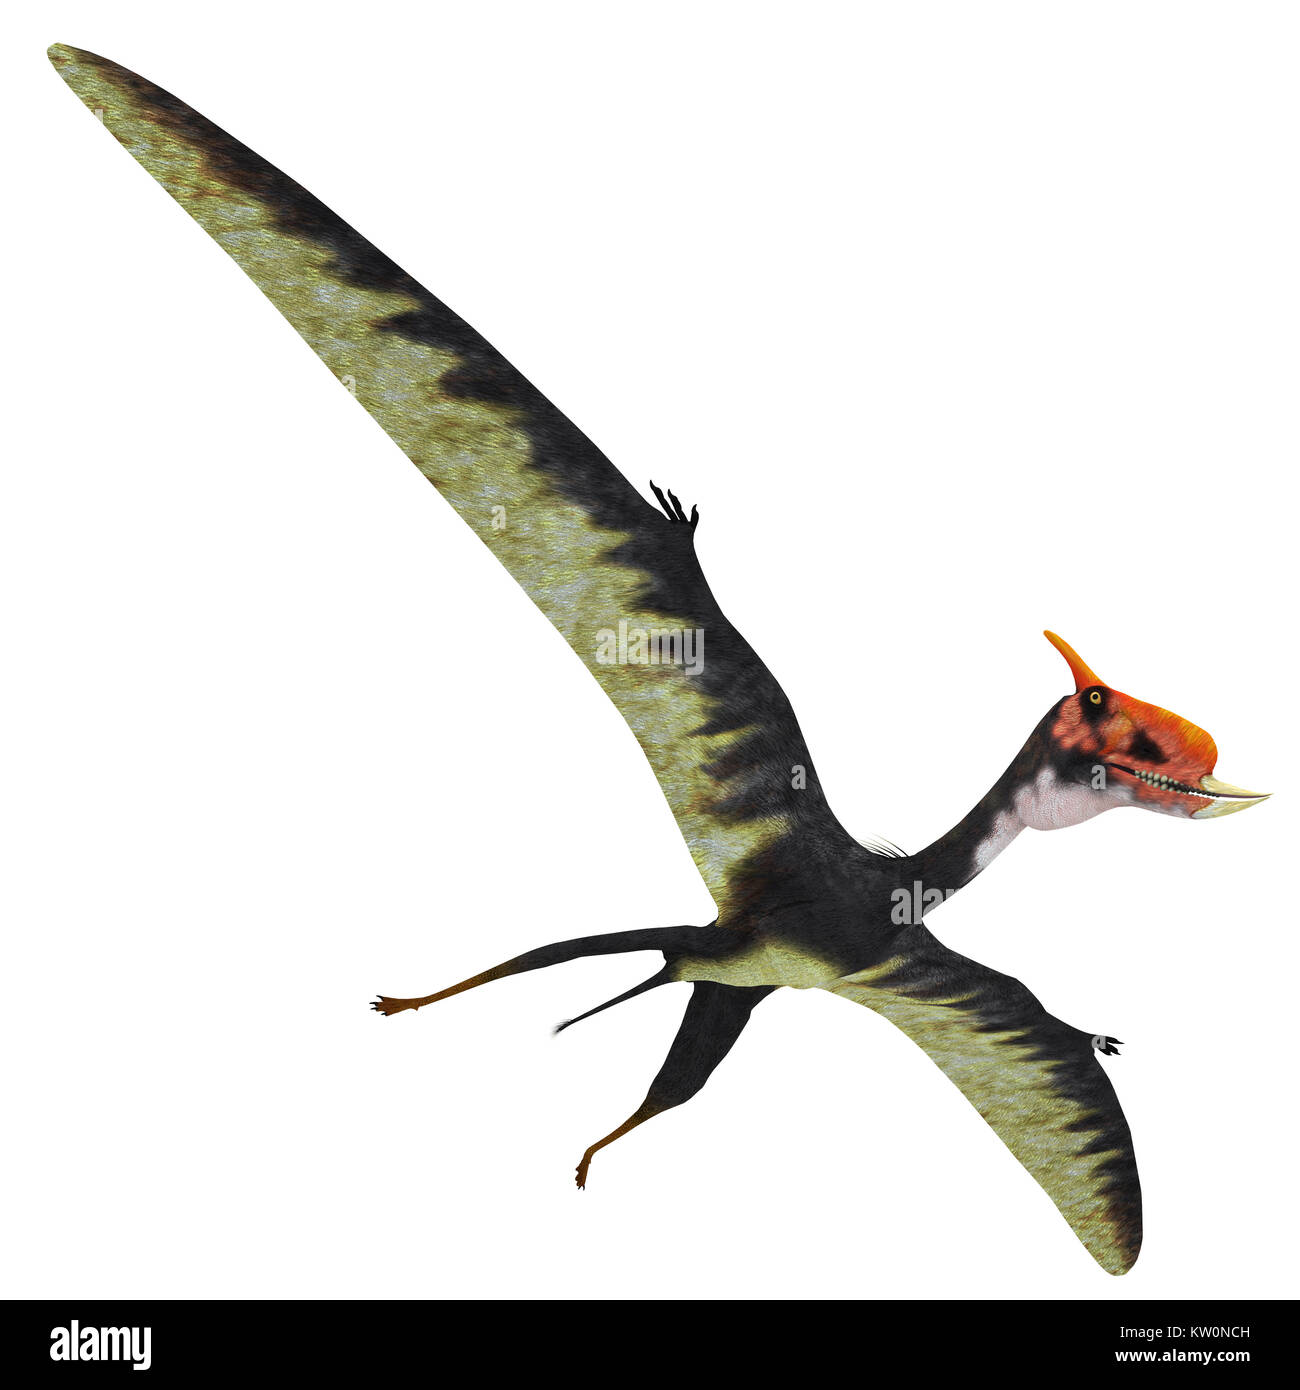 Dsungaripterus Reptile Wings Spread - This carnivorous pterosaur lived in China in the Cretaceous Period and preyed - Stock Image